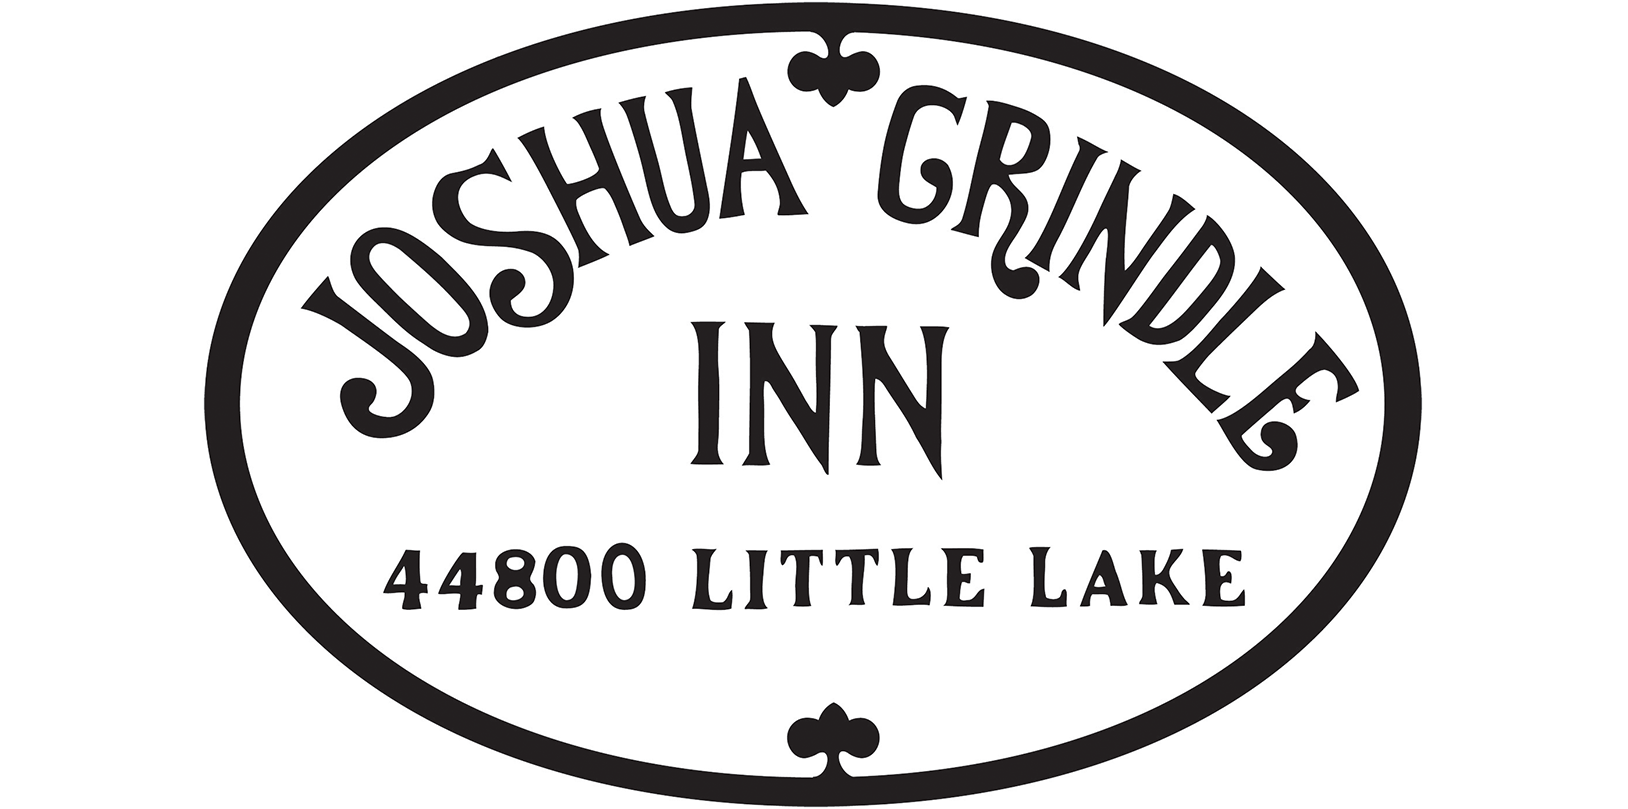 Joshua Grindle Inn - 20% off rooms for the weekend of the event(707) 937-6022